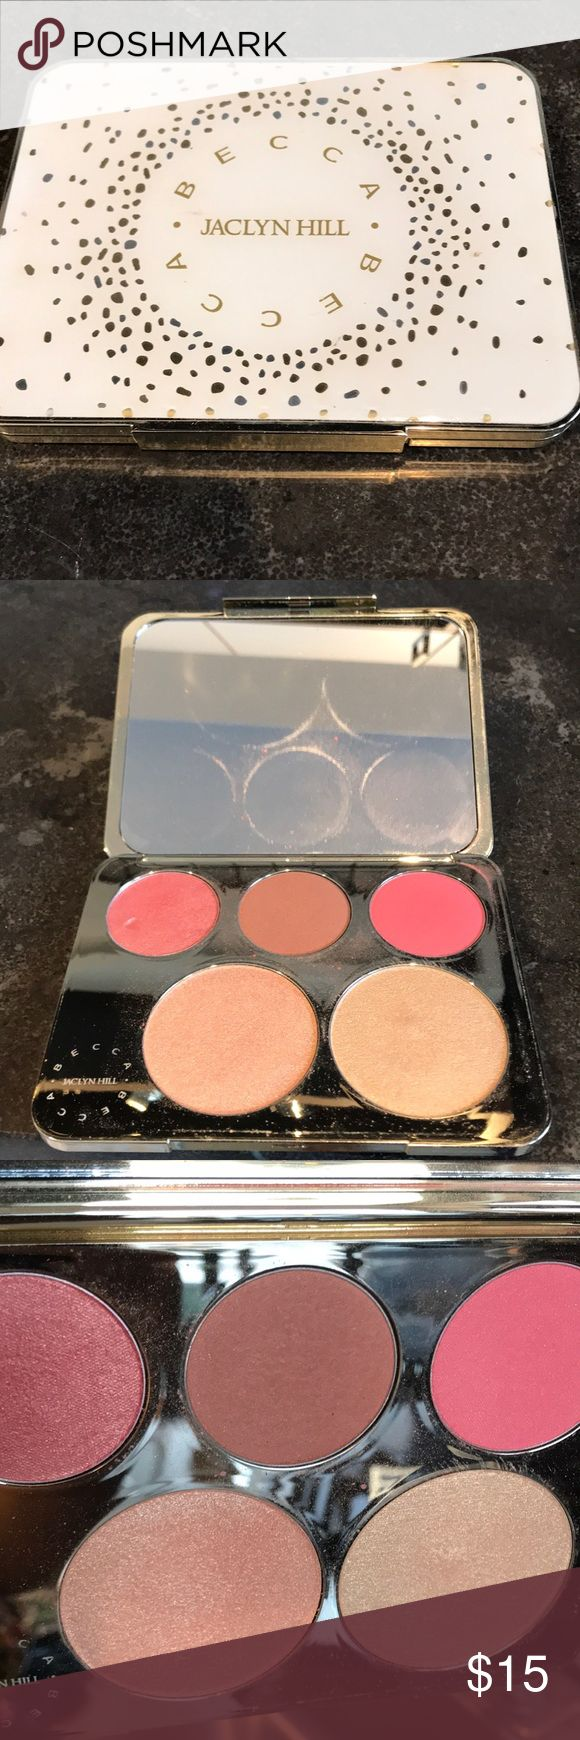 Becca Jacklyn hill palette Barely used Becca x Jaclyn Hill highlighter palette BECCA Makeup Luminizer